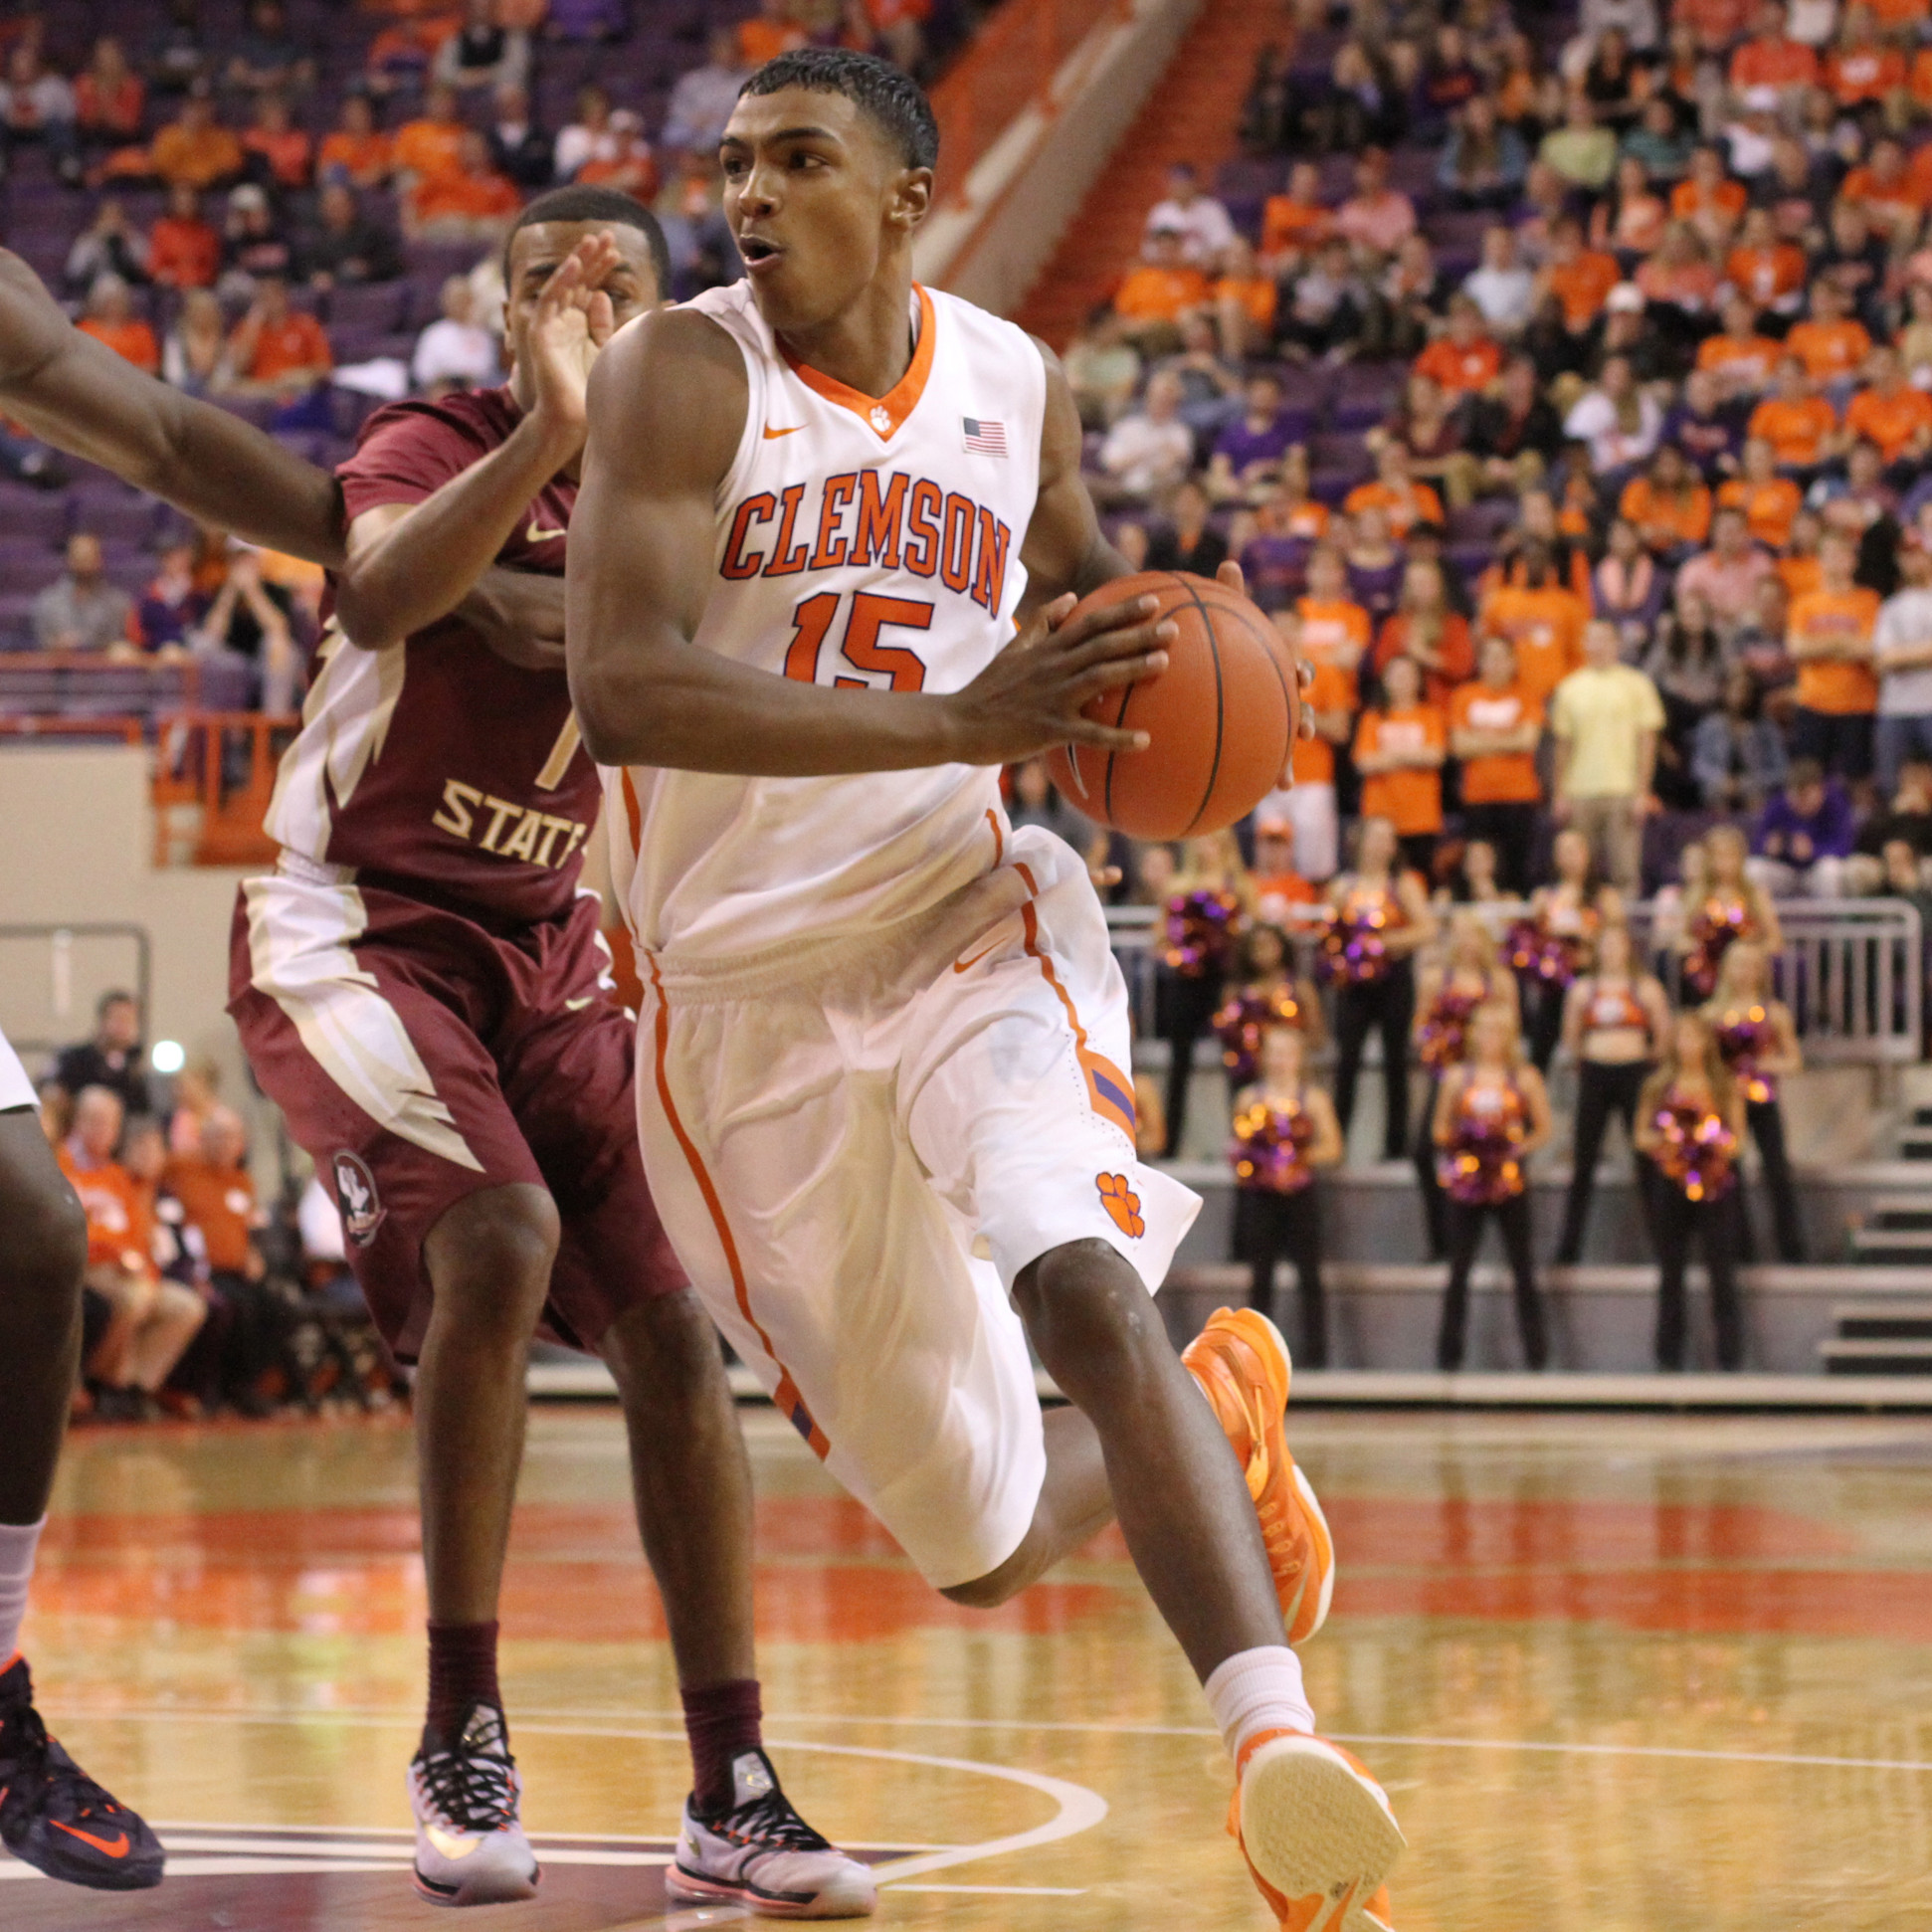 Tigers Face Florida State in #ACCTourney